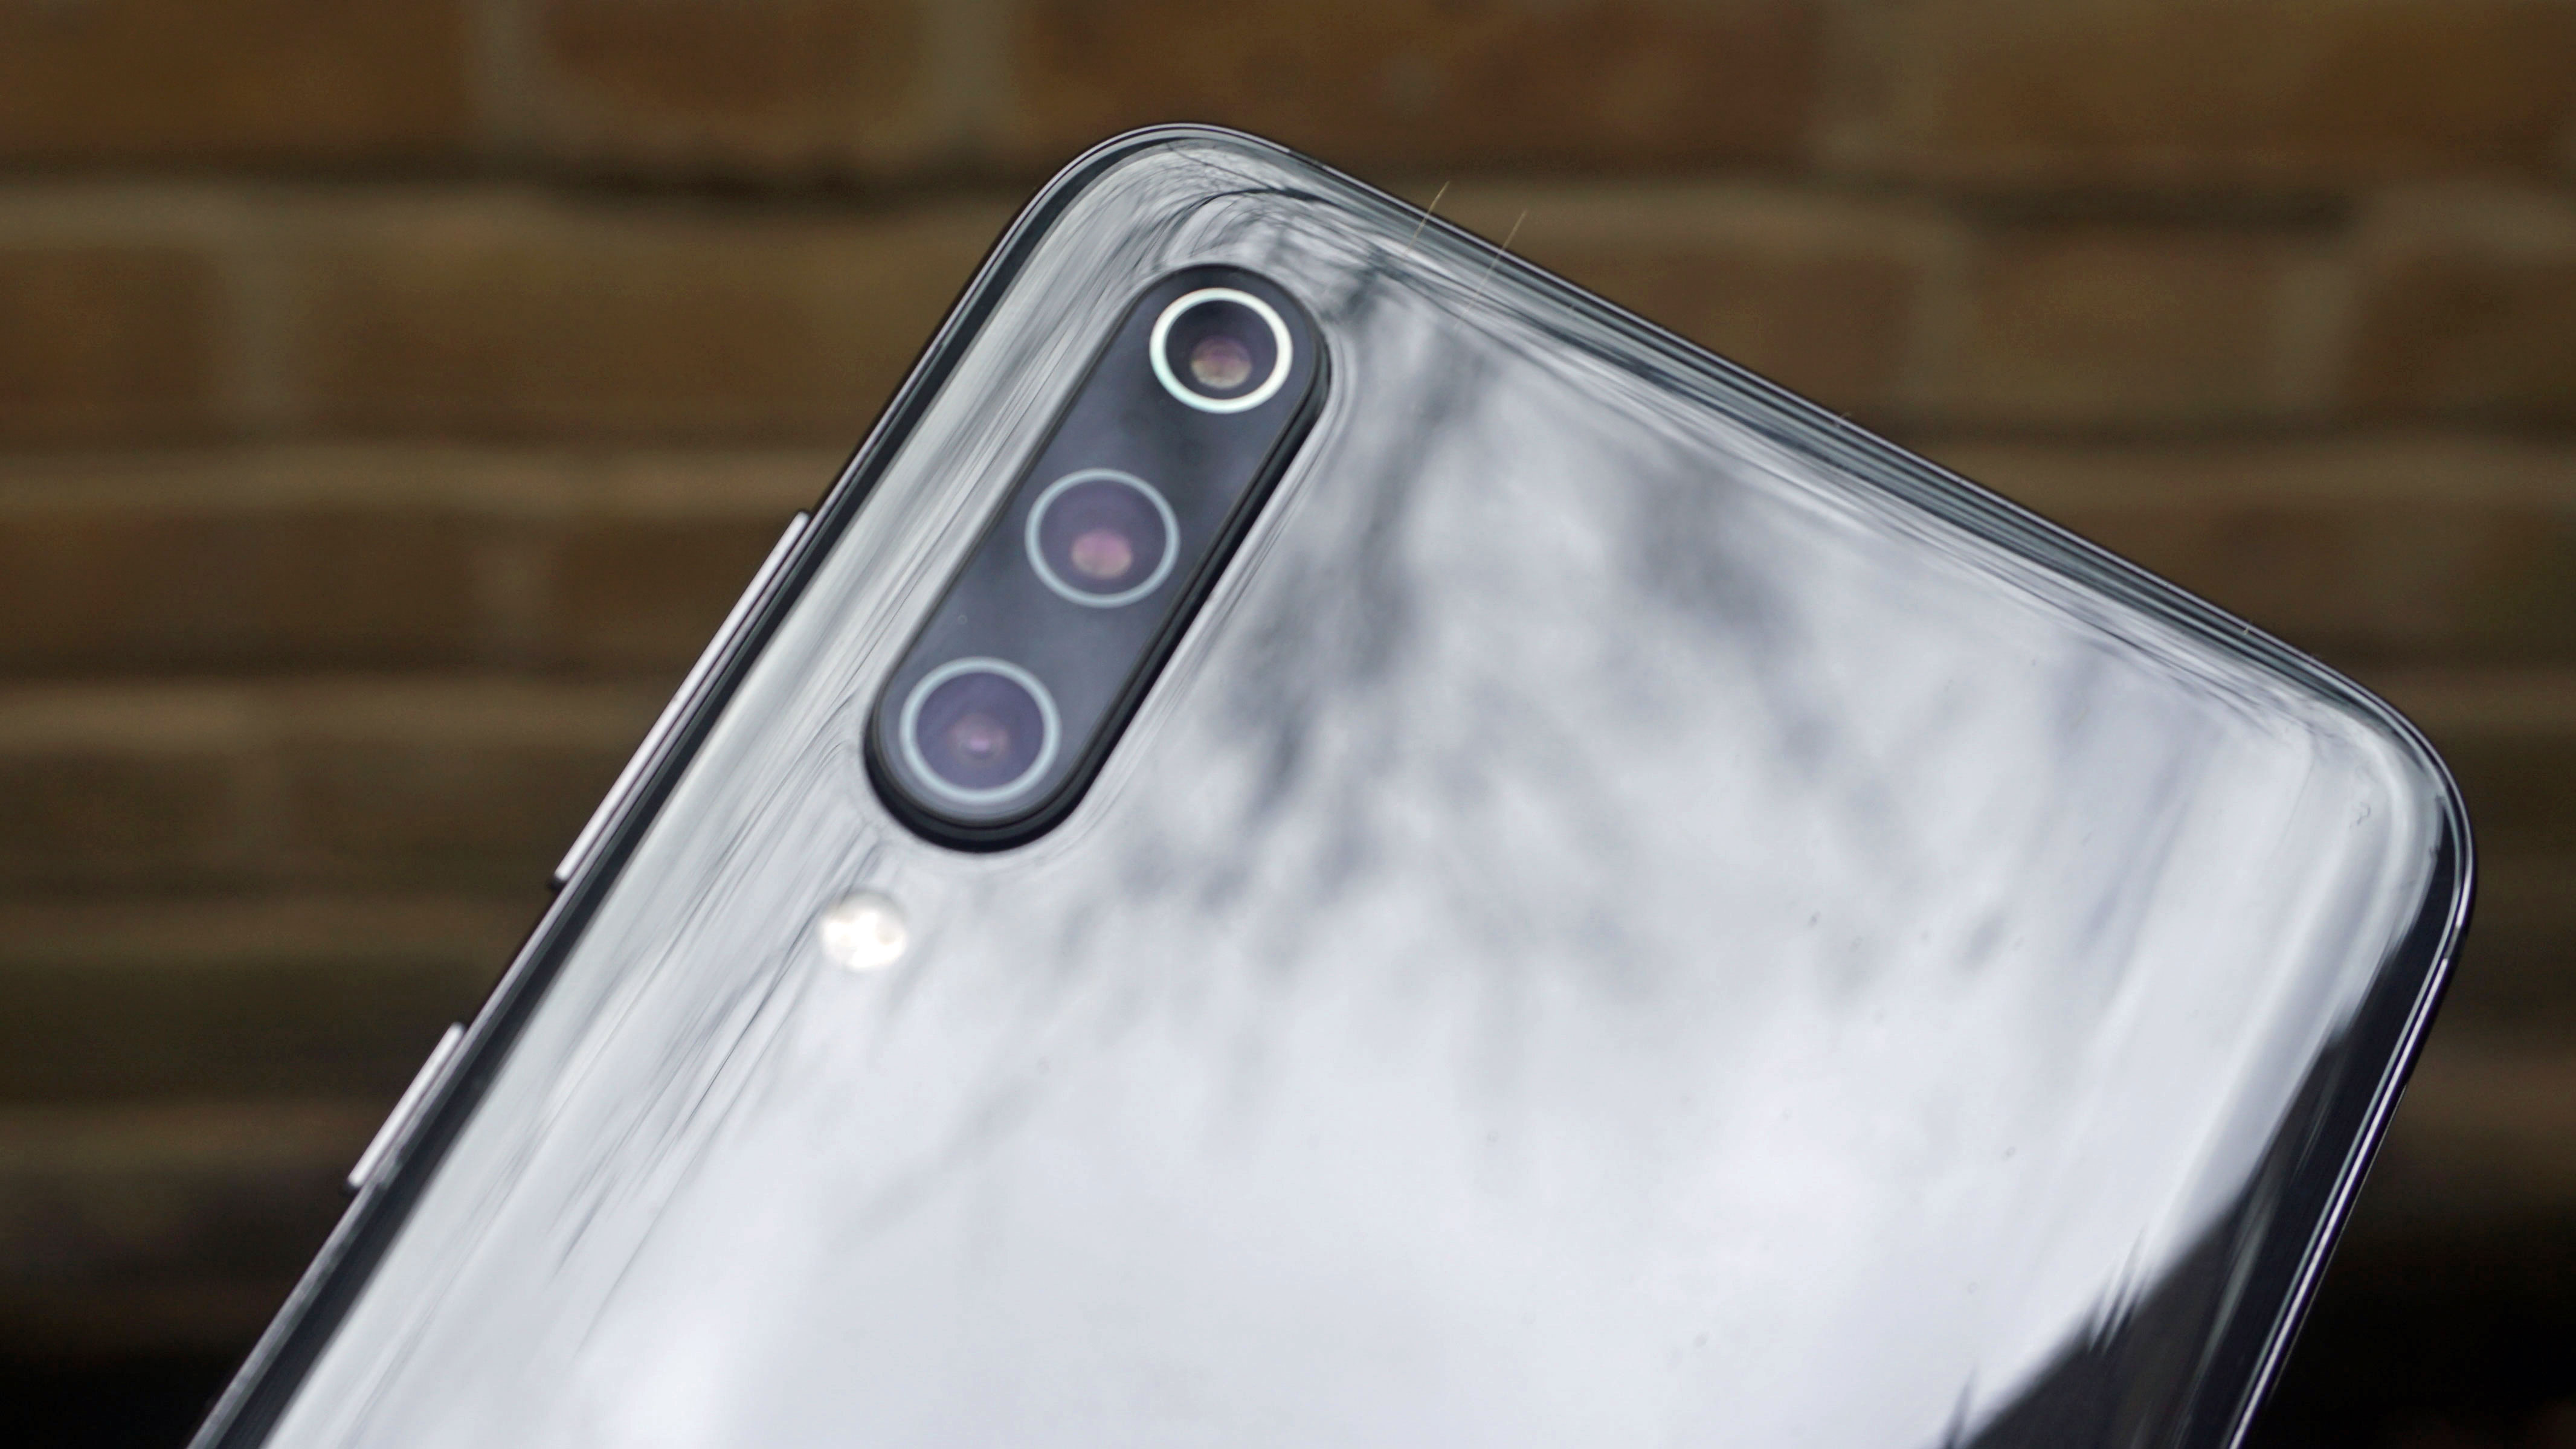 The first smartphone with a 64MP camera could come from